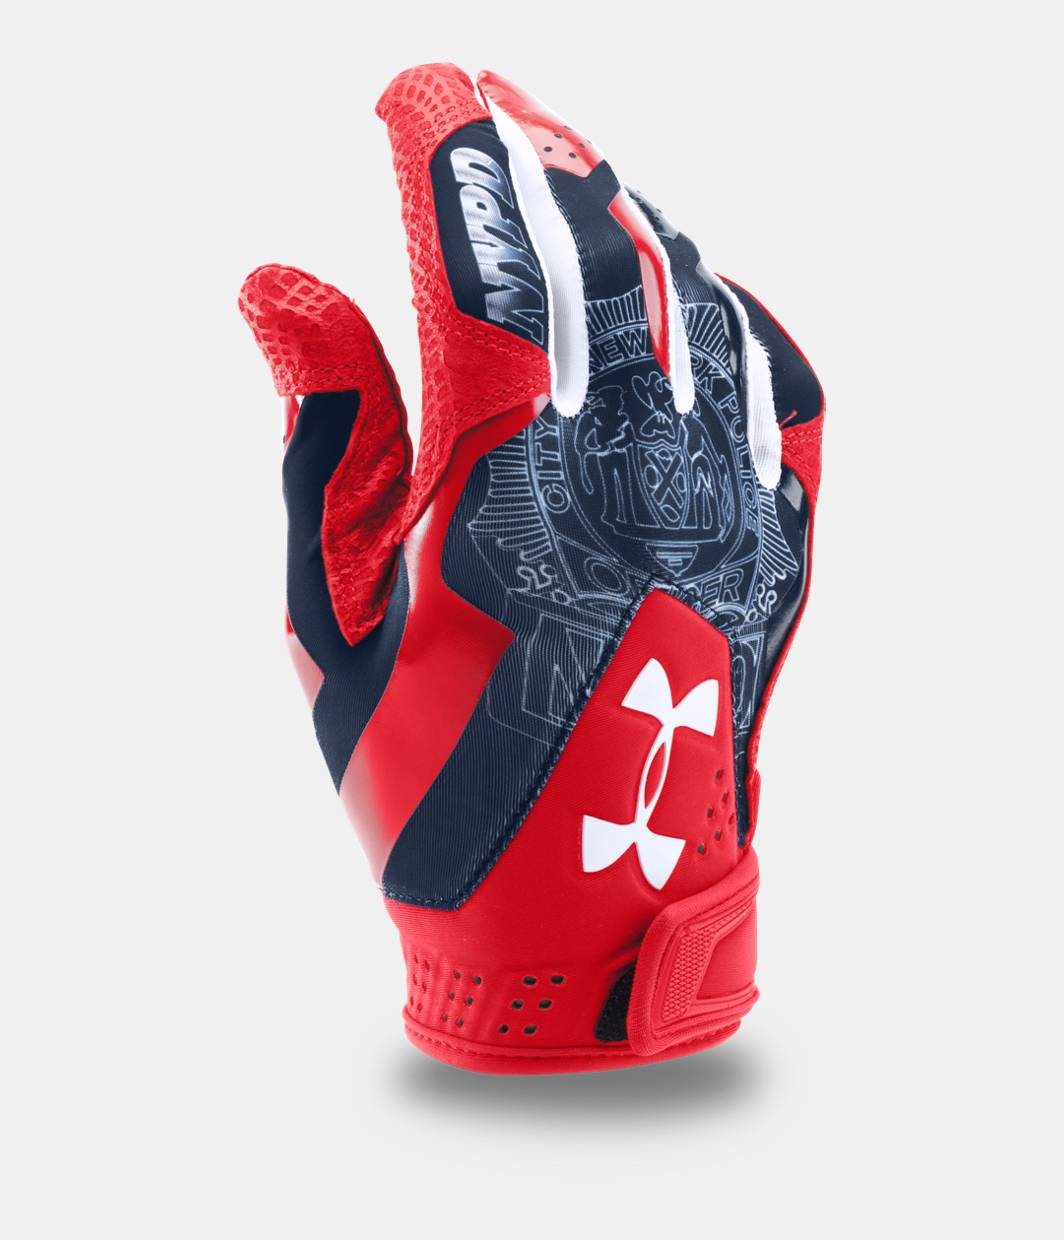 Under armour leather work gloves - Men S Ua Yard Undeniable Batting Gloves Limited Edition Red Zoomed Image